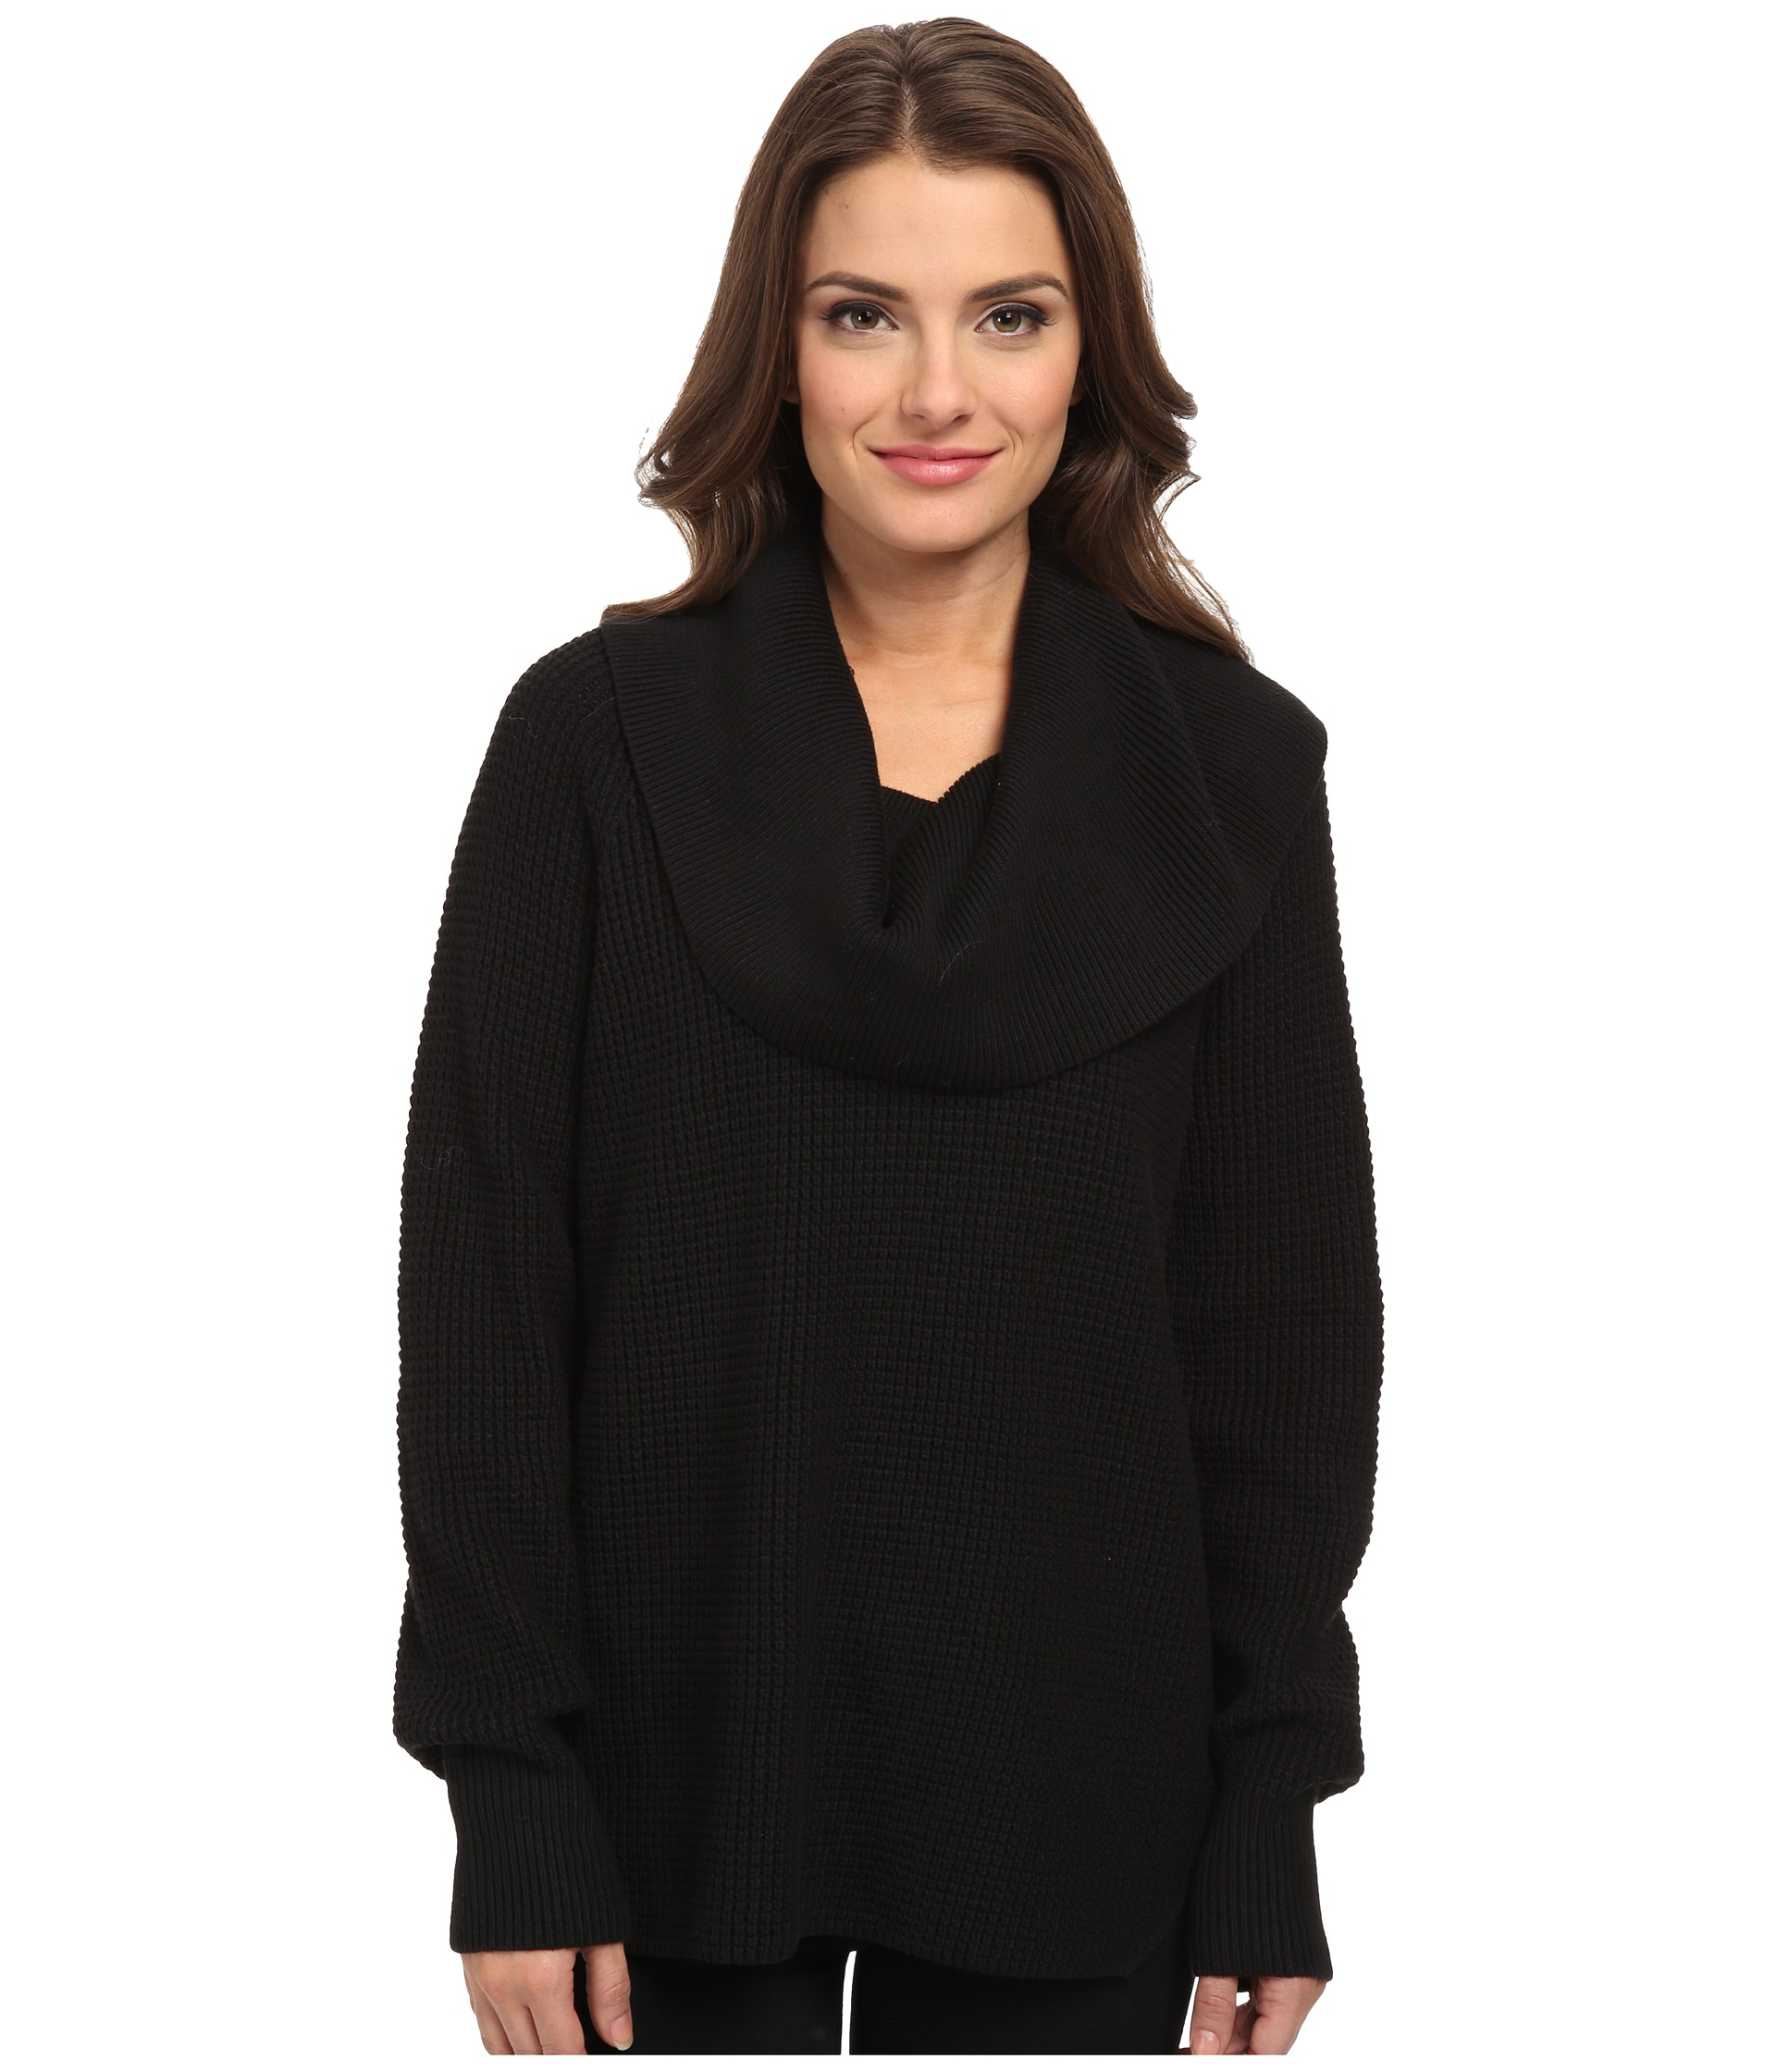 Michael michael kors Petite Thermal Cowl Neck Sweater in Black | Lyst